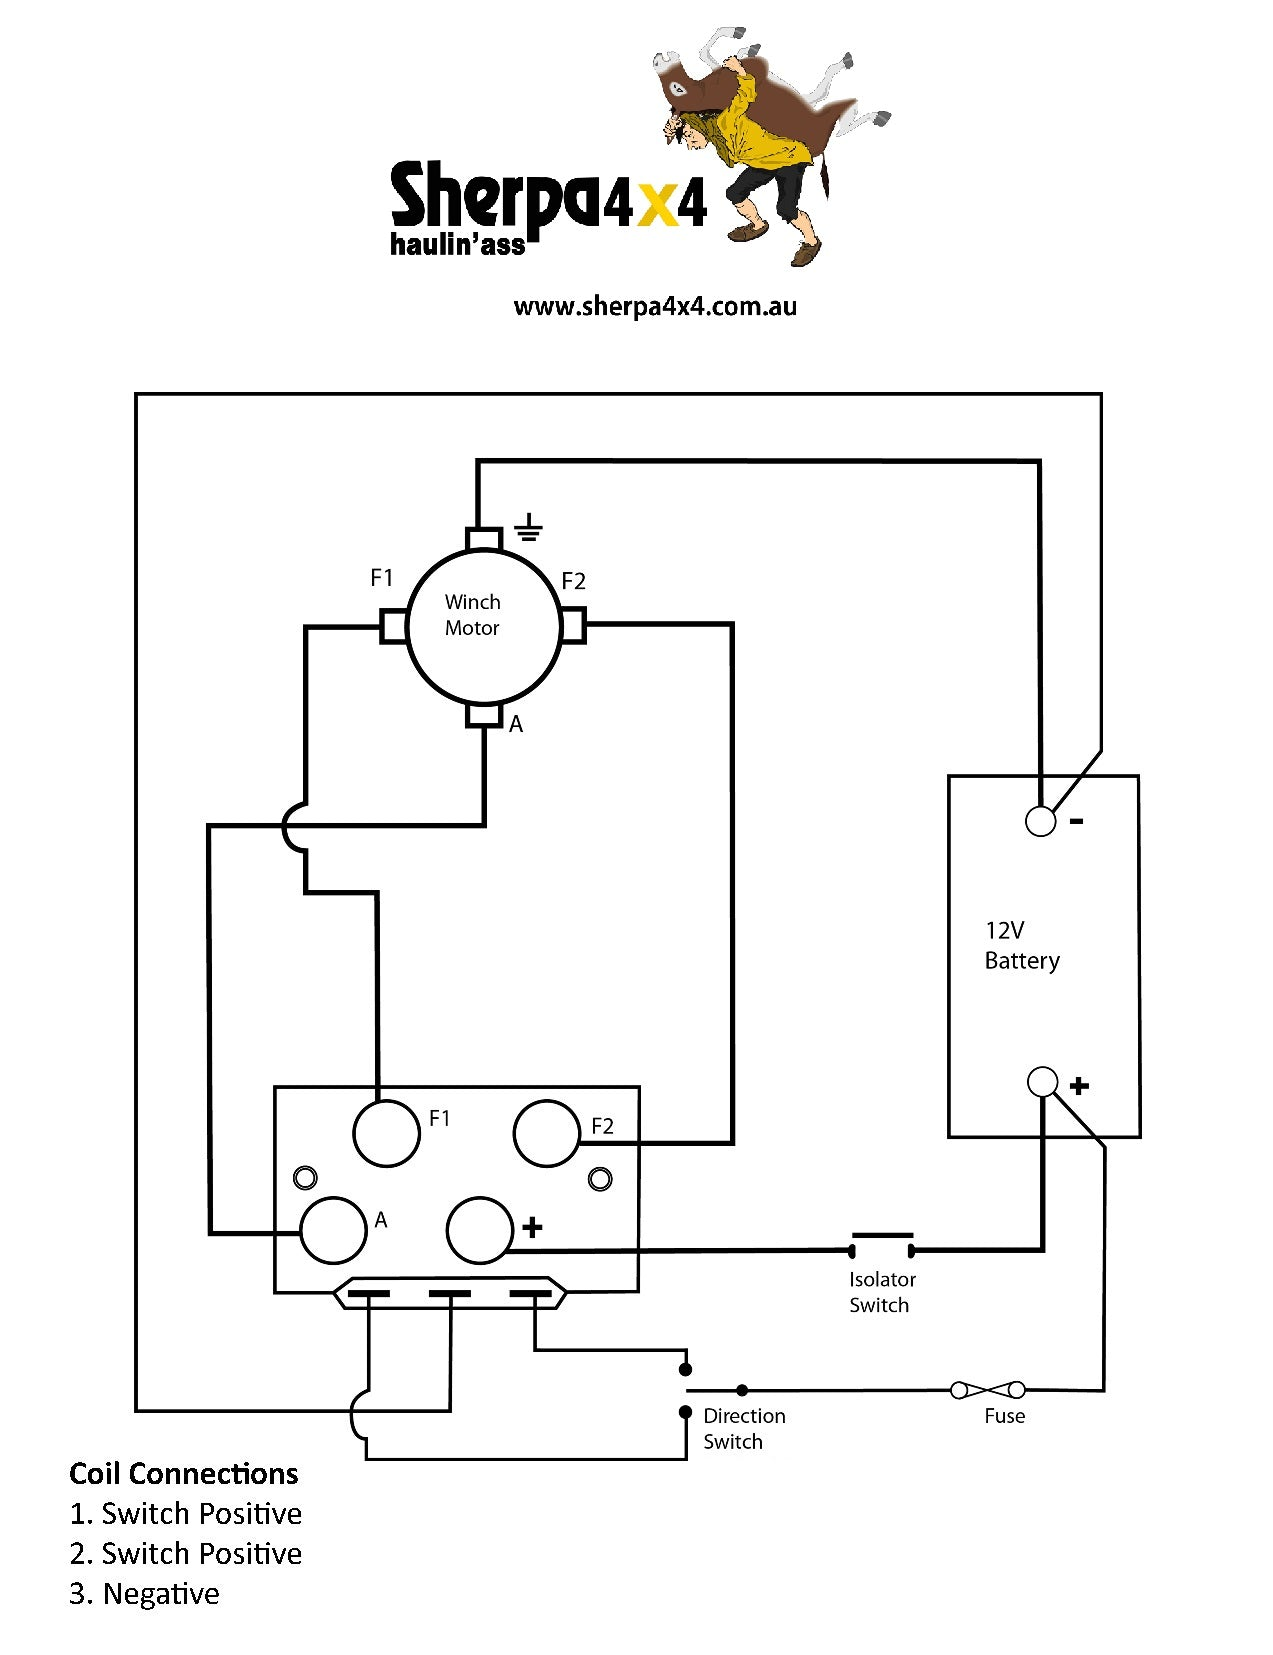 Sherpa_4x4_Winch_Wiring_Diagram?12240005484949772751 genuine albright winch solenoids 12 volt 24 volt dc88p sherpa 4x4 albright contactor wiring diagram at gsmportal.co